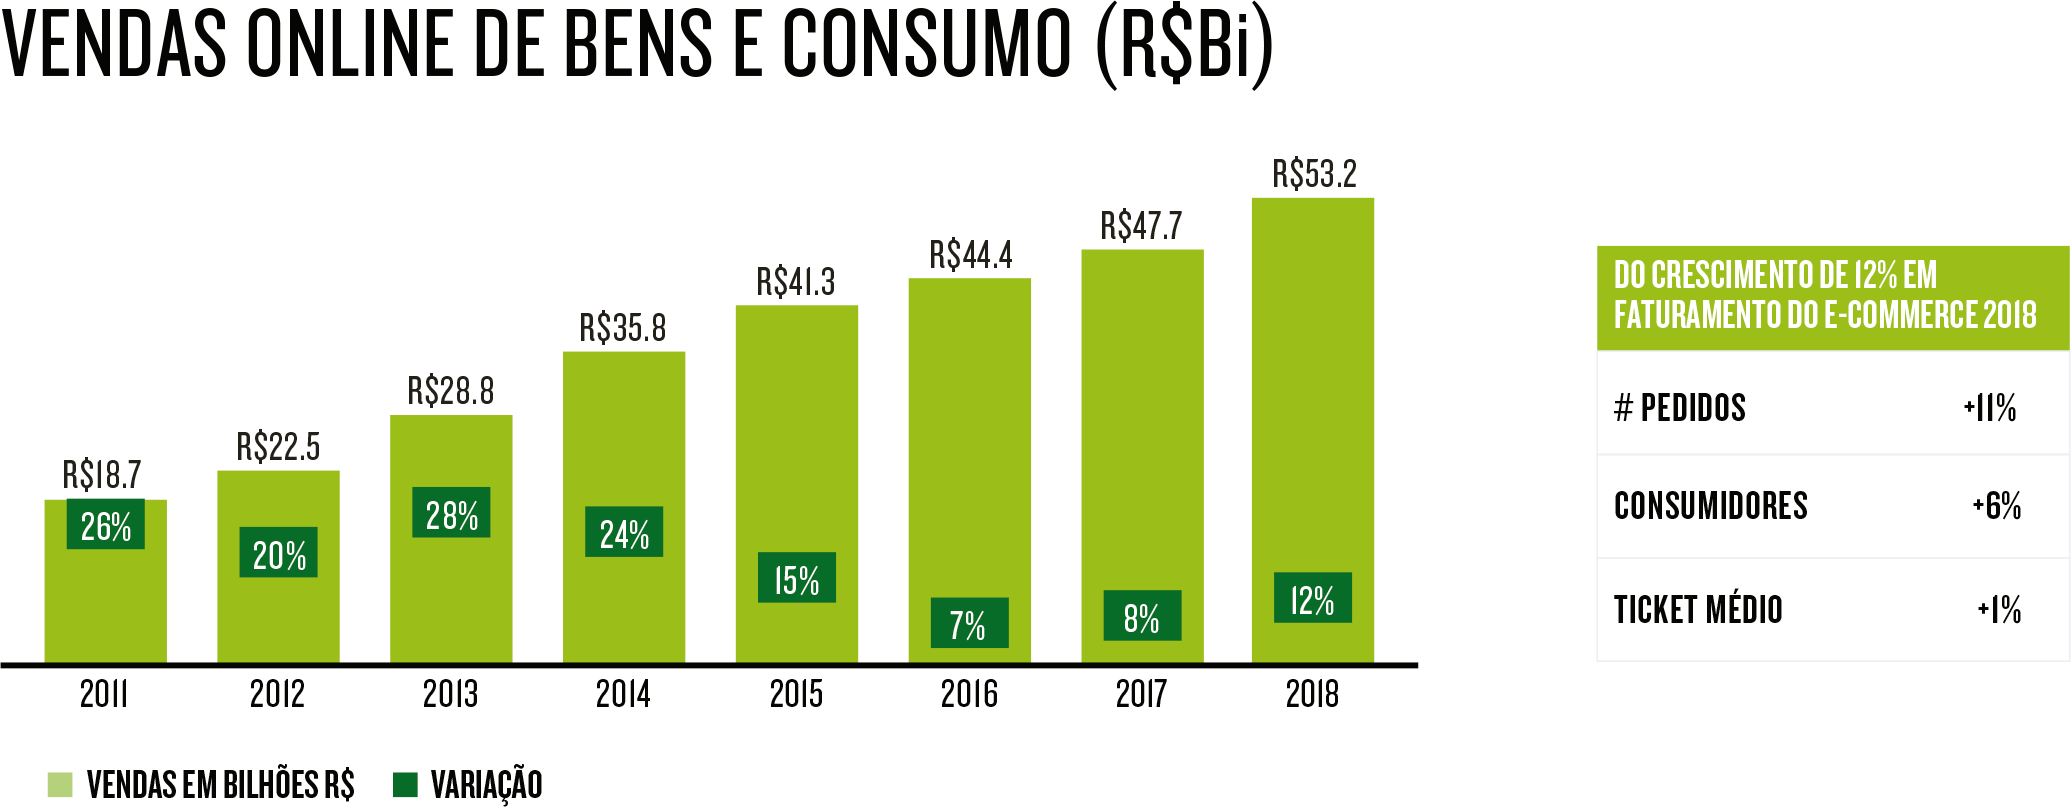 Vendas de bens de consumo no e-commerce